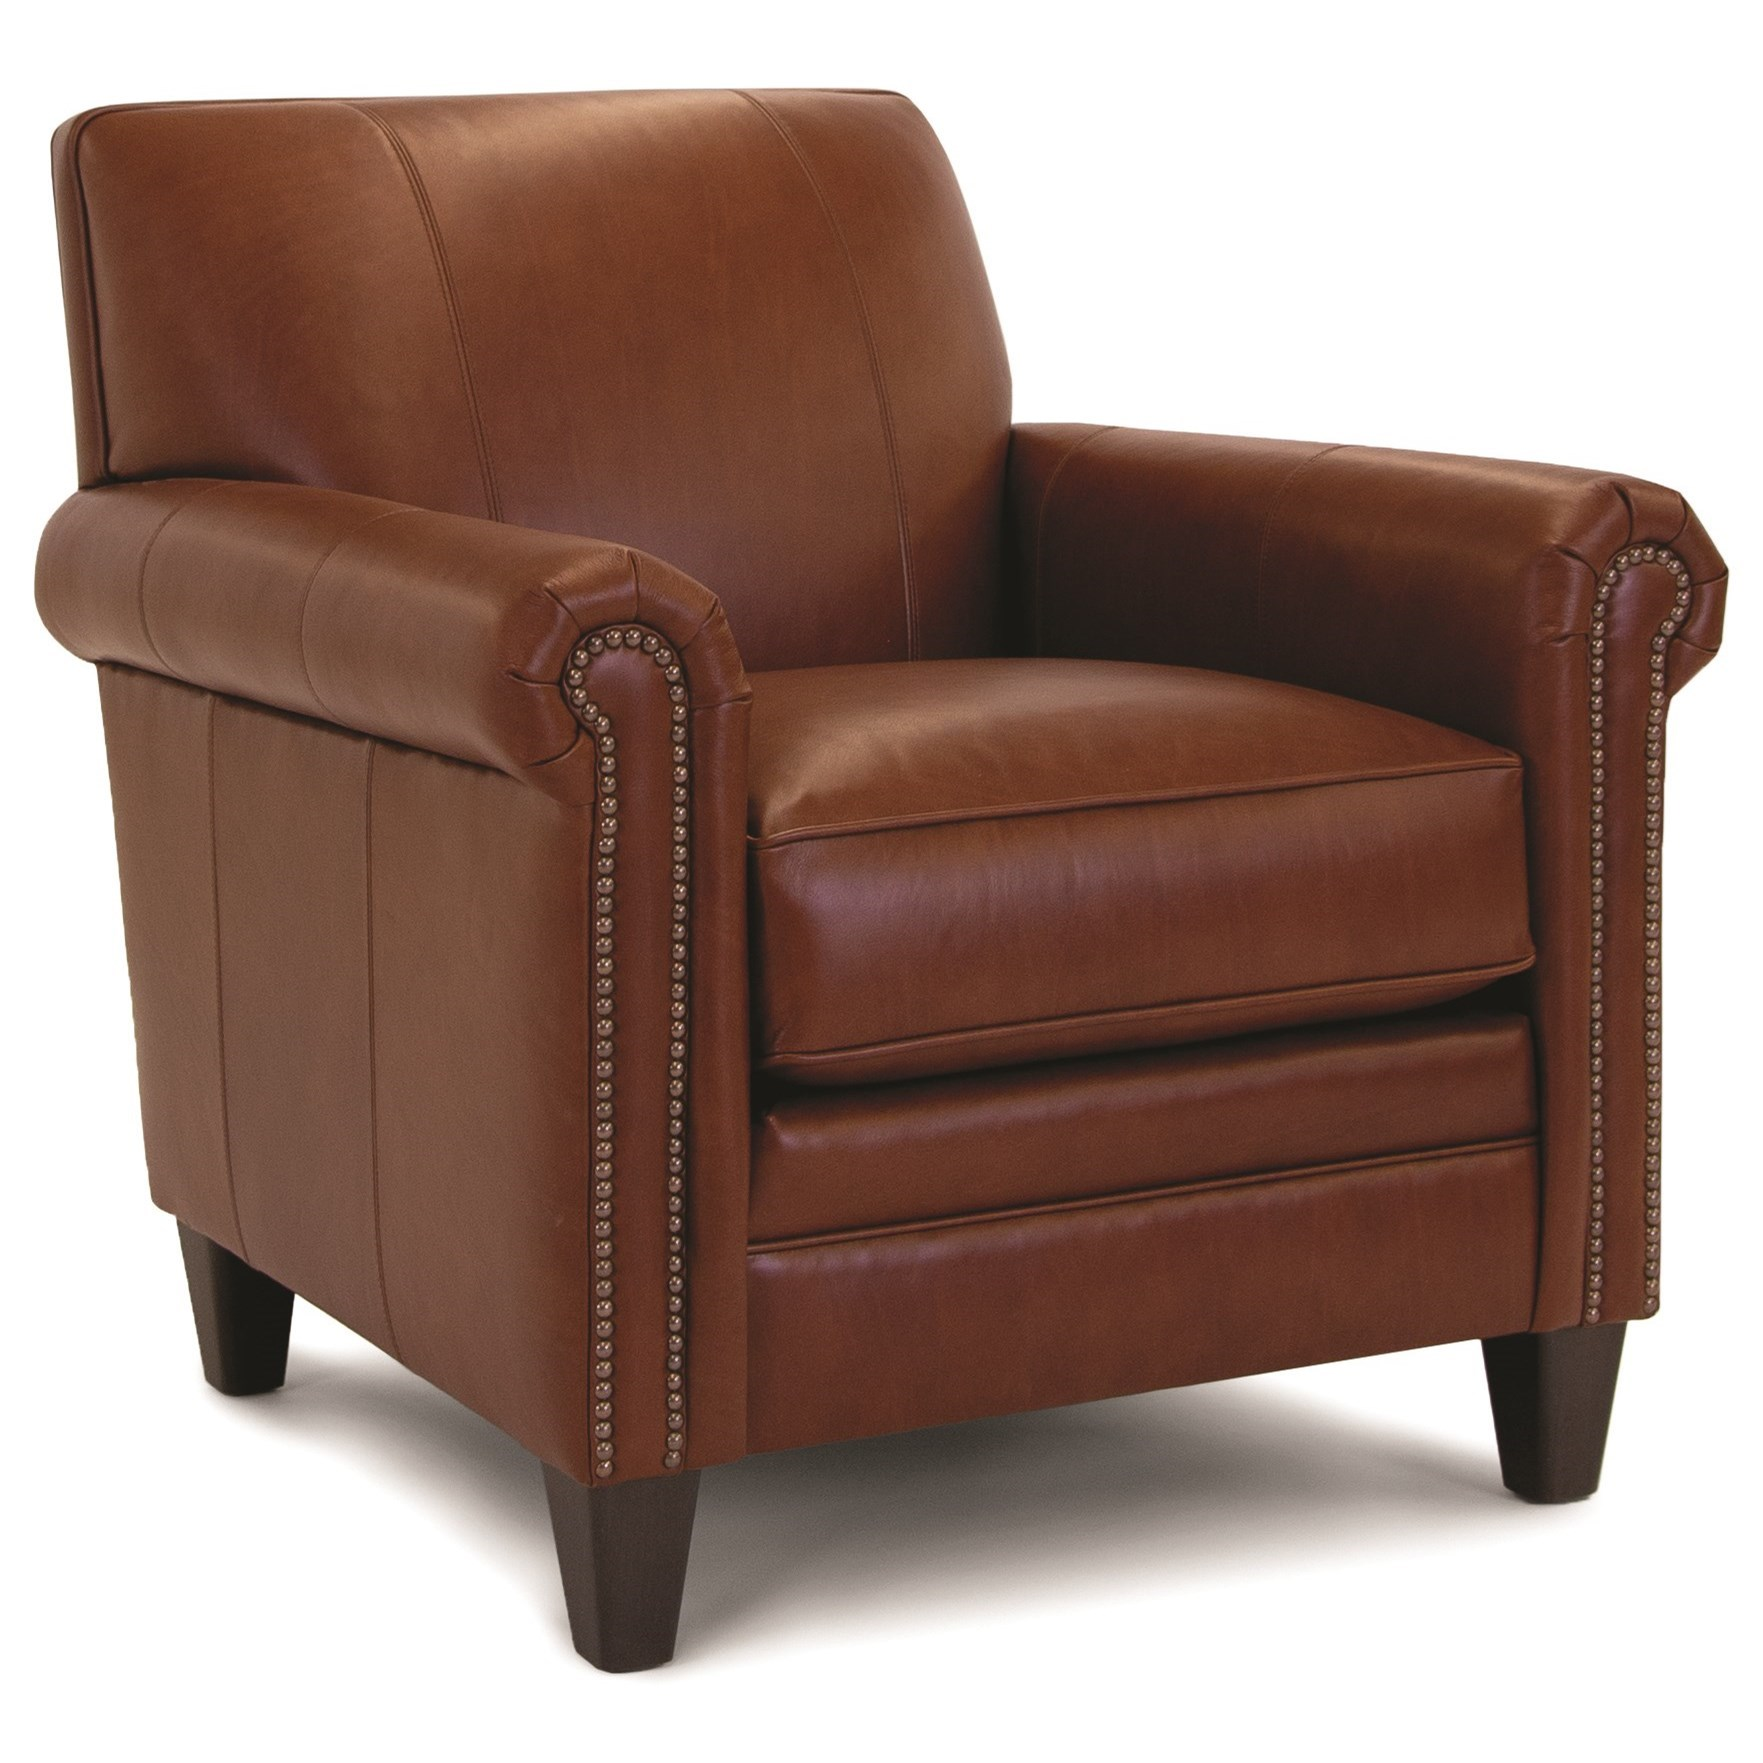 Build Your Own 3000 Series Customizable Chair by Smith Brothers at Coconis Furniture & Mattress 1st